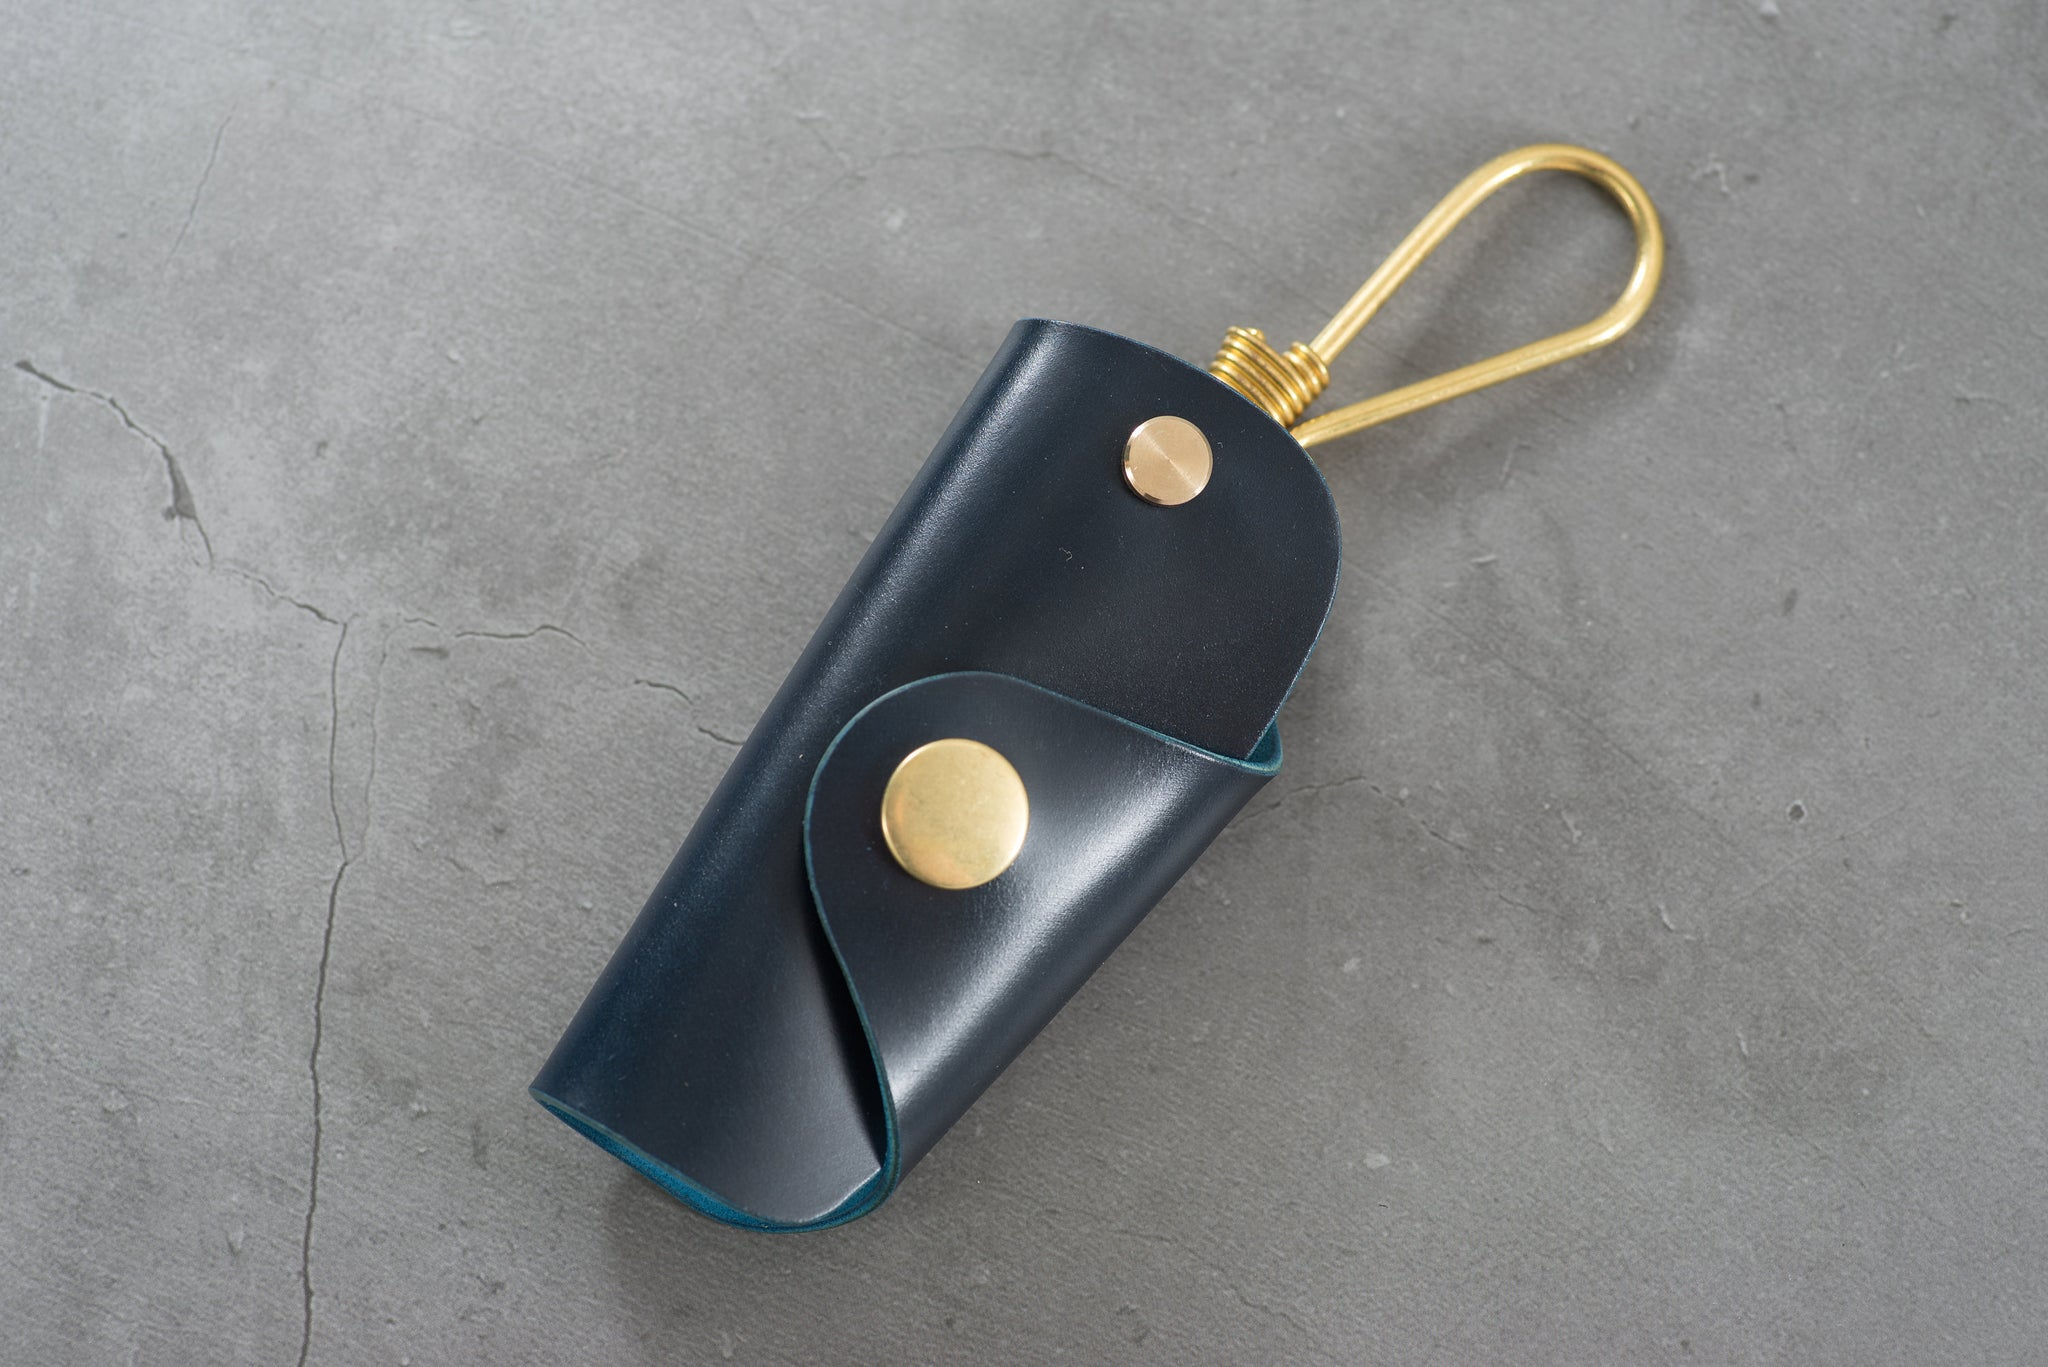 7 COLORS - Navy Blue Shell Cordovan Leather Key Case